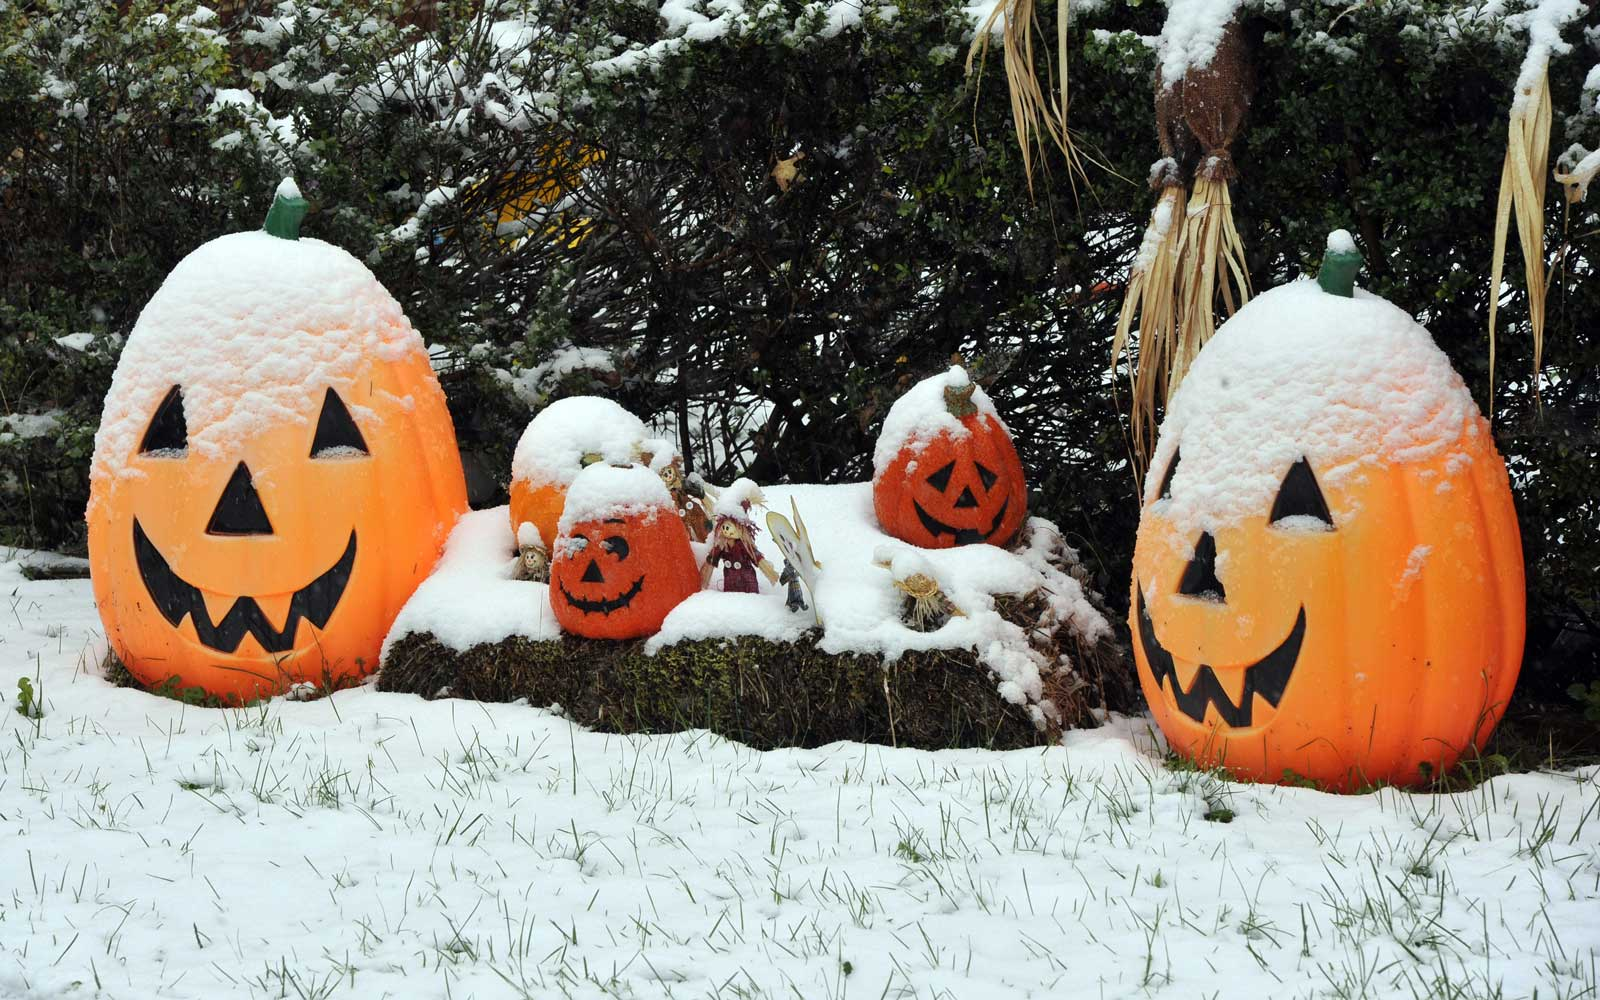 Halloween 2019: Southern Ontario forecast to get wet, warm, windy weather